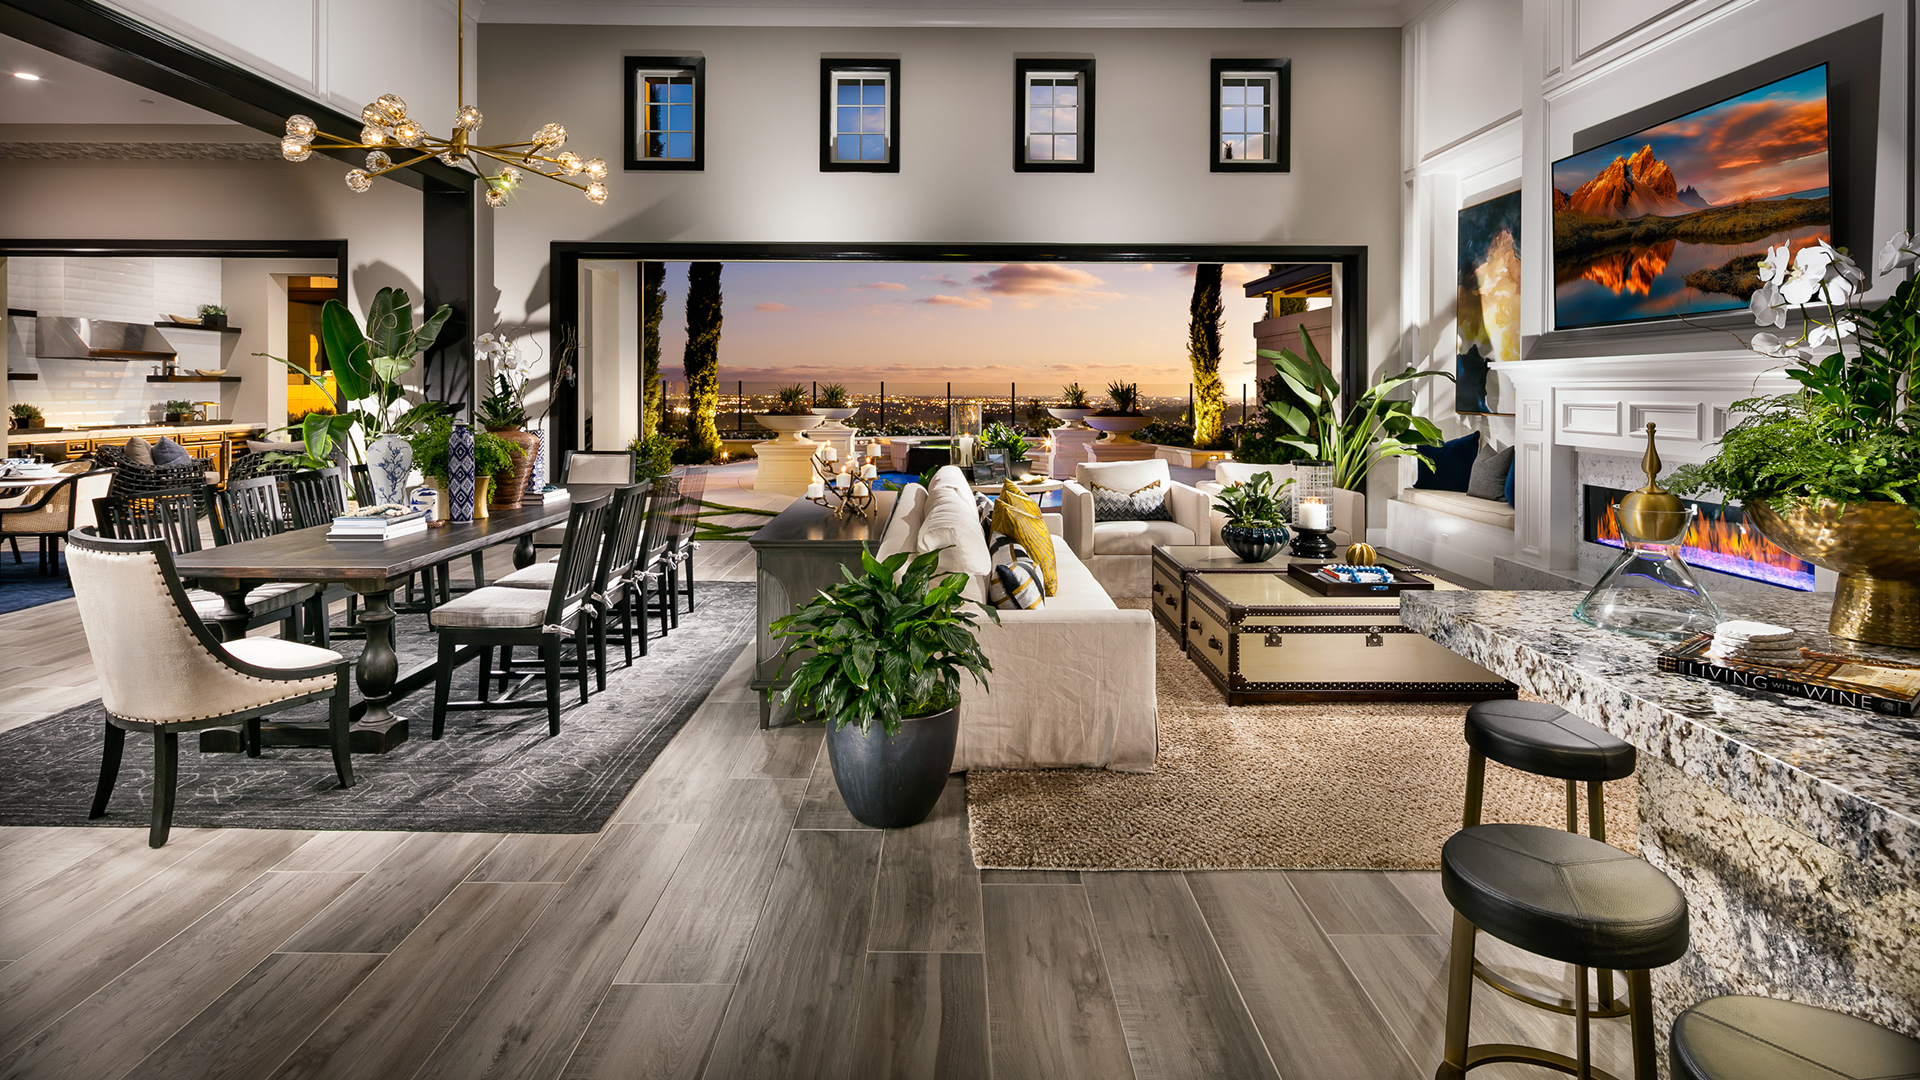 Home Design: New Homes For Sale In San Juan Capistrano, CA